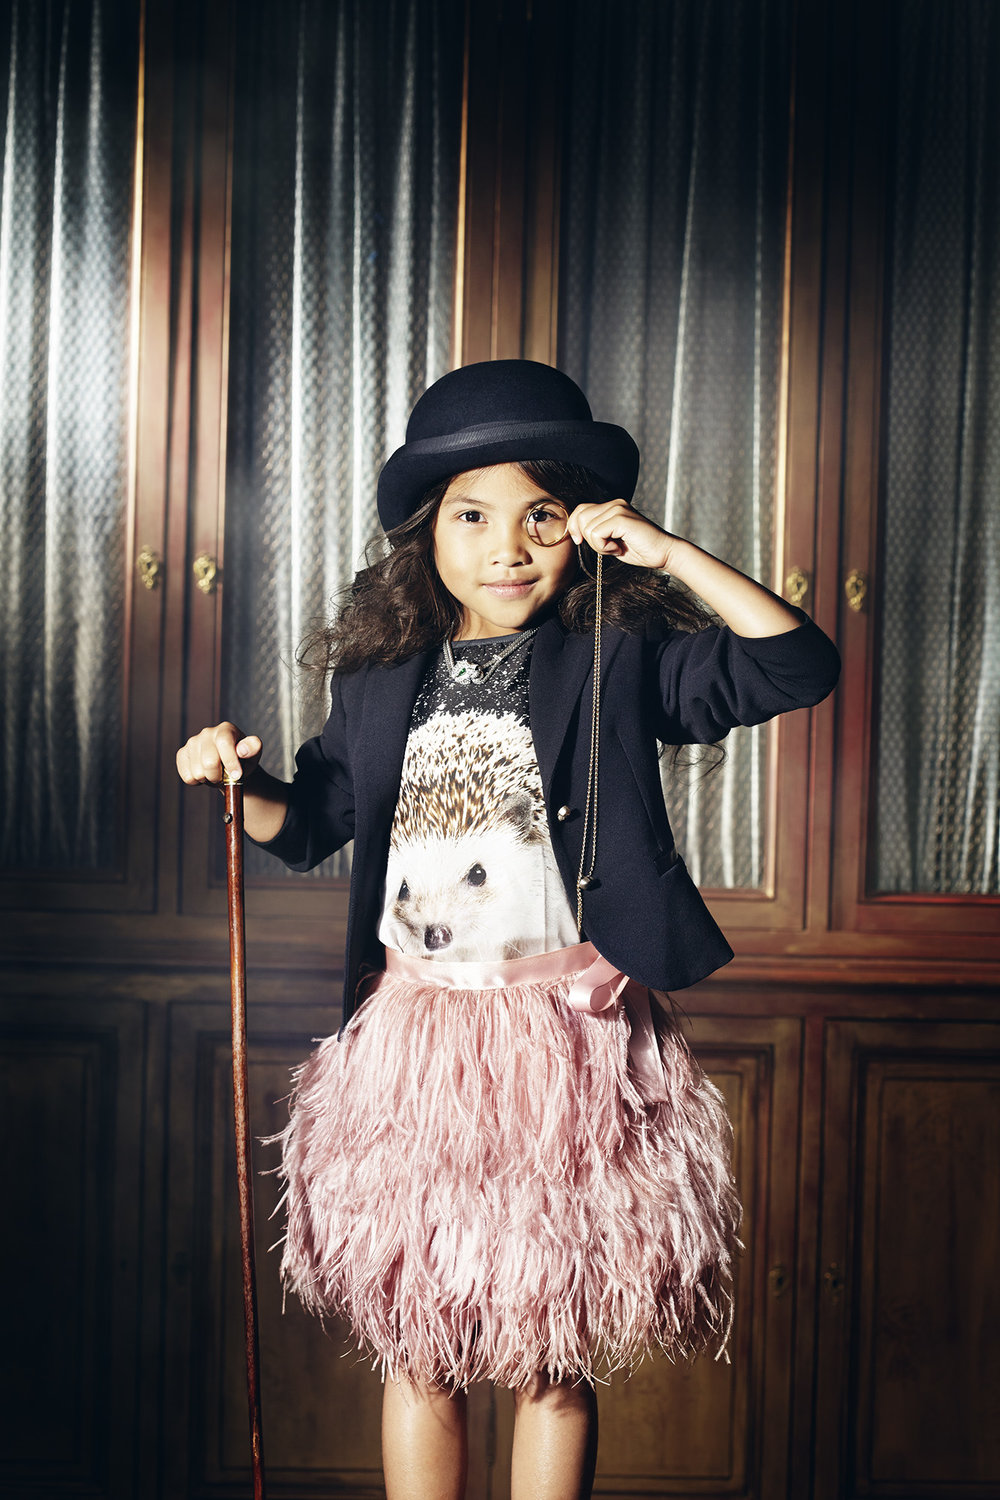 Ilve Little - girl in bowler hat